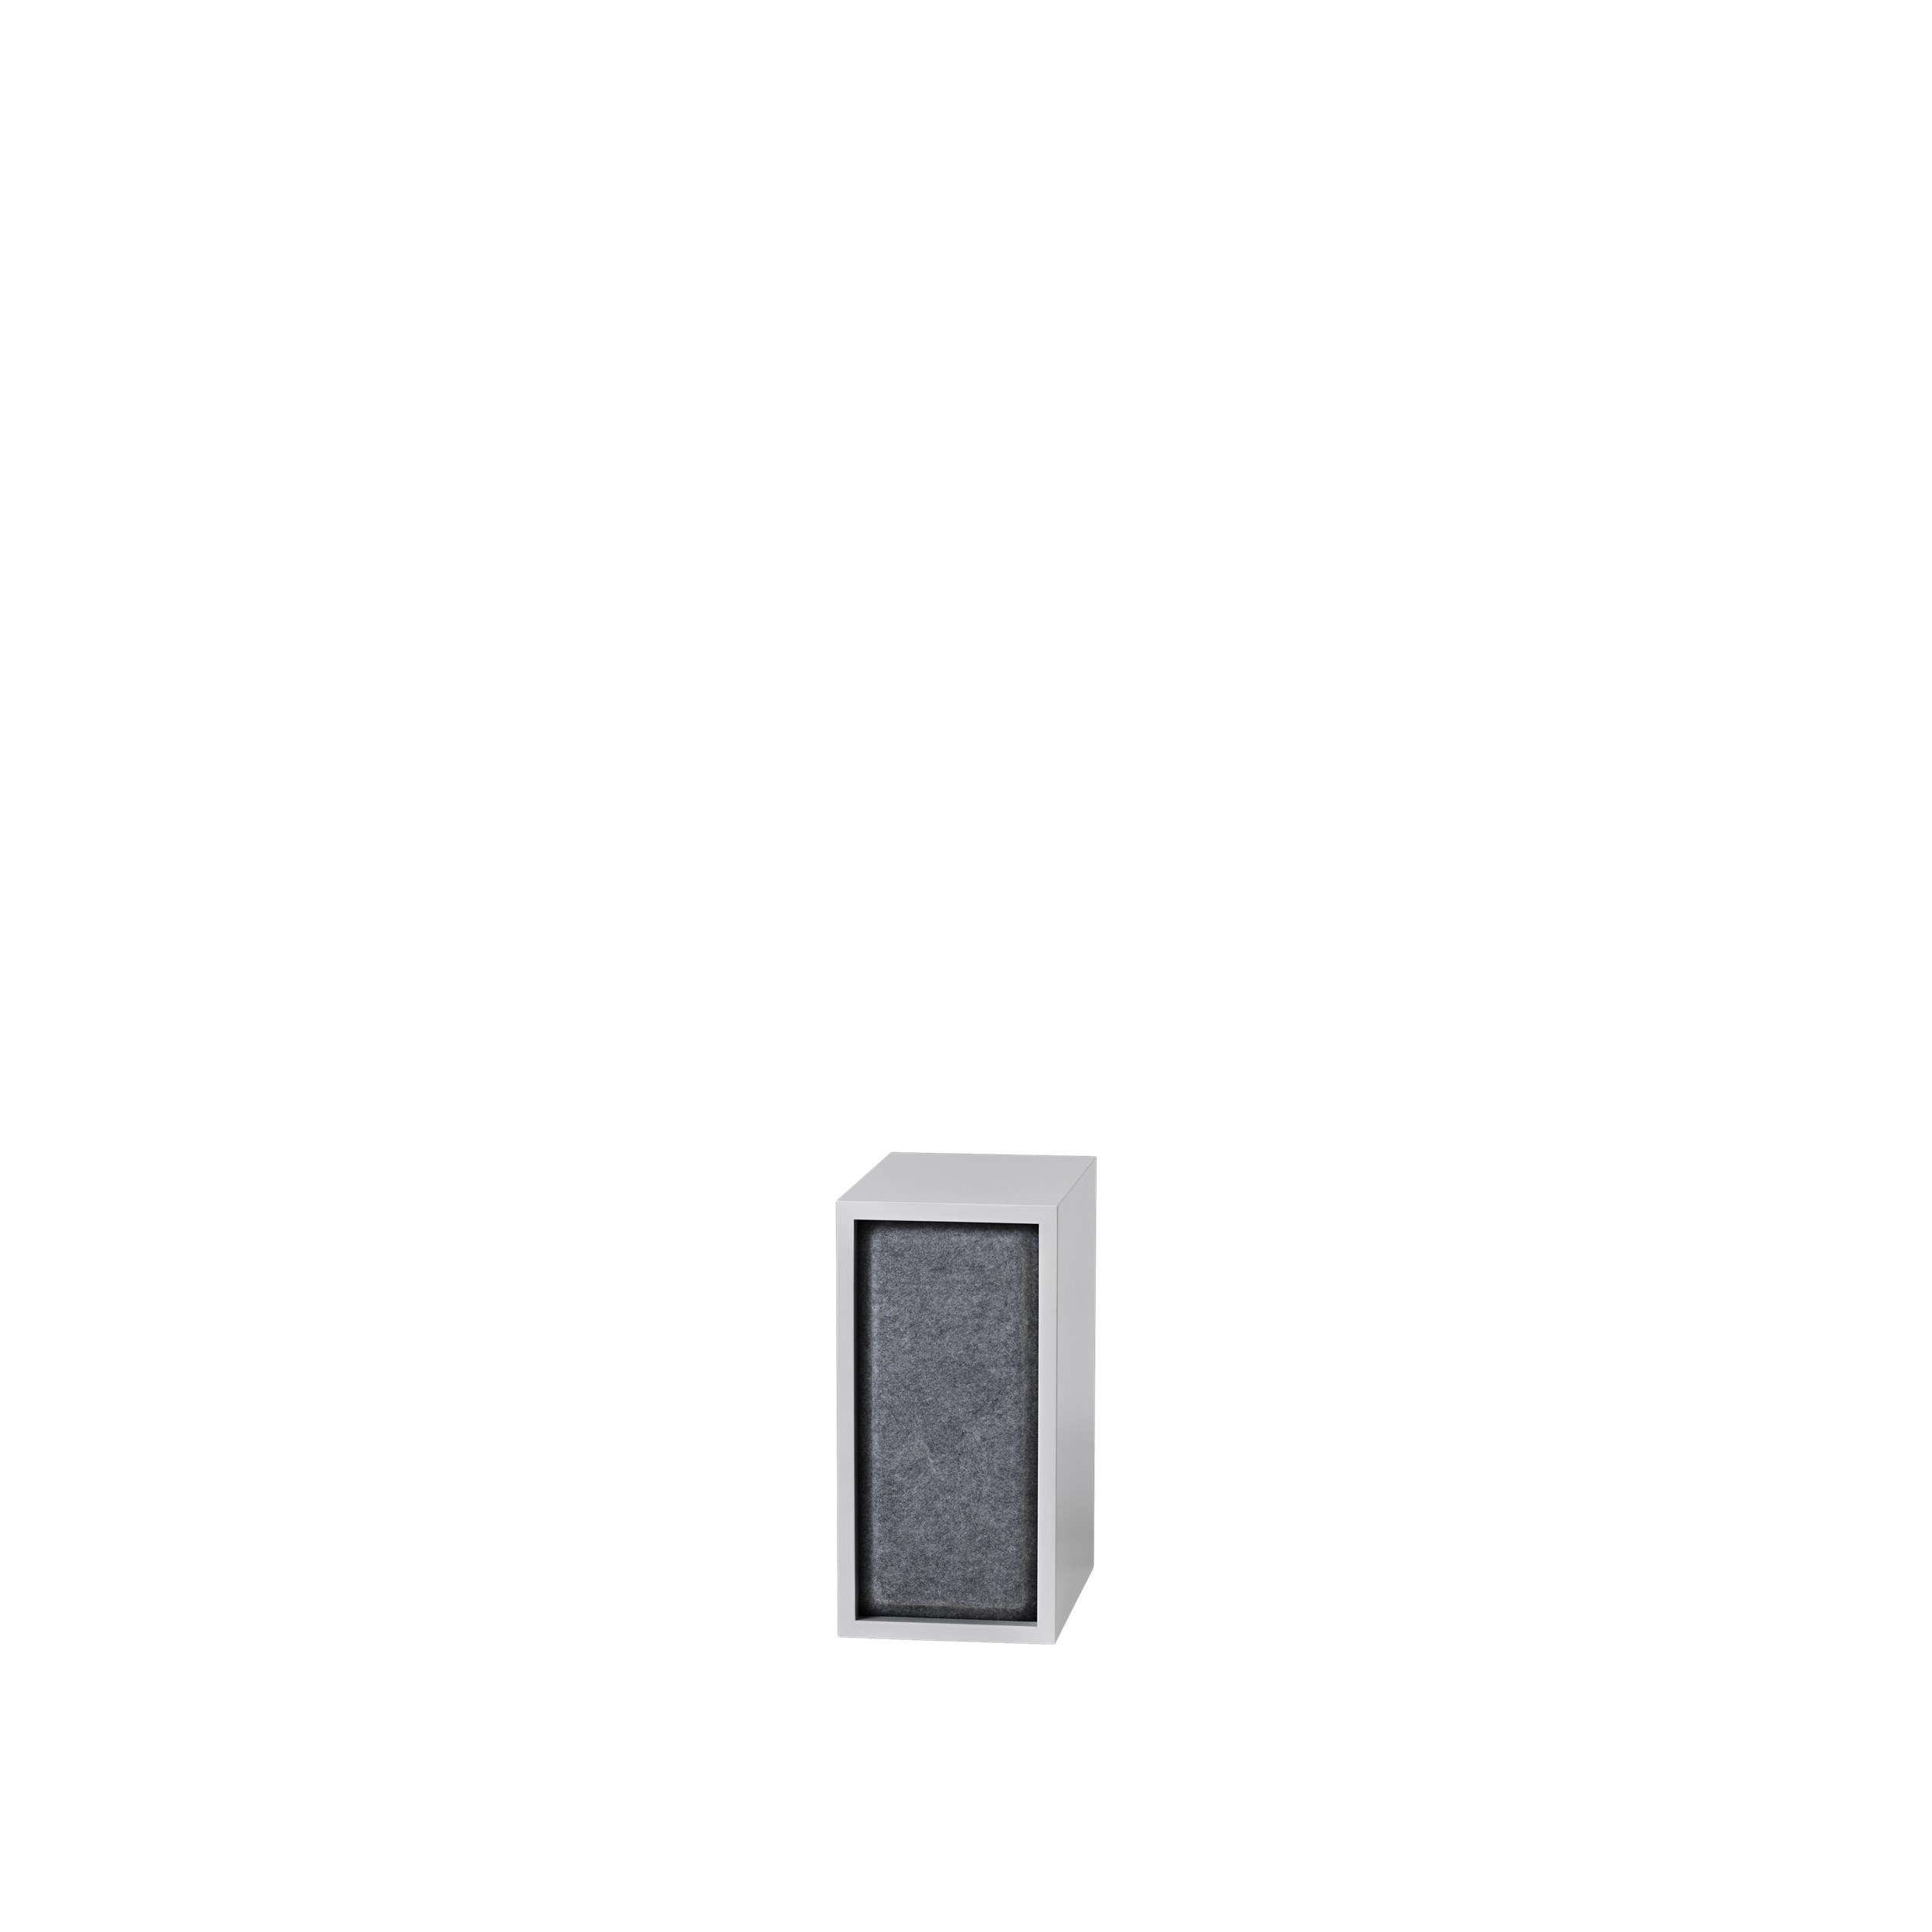 Stacked 2.0 acoustic panel small grey